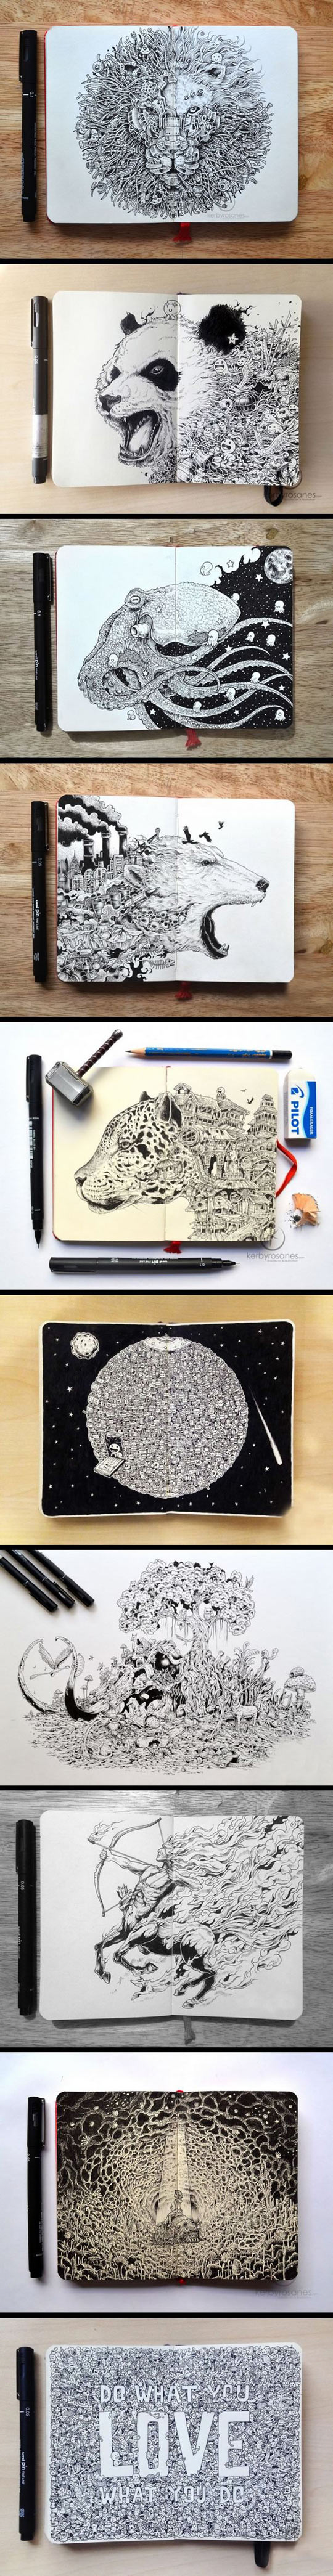 These Hyper-Detailed Drawings Are Awesome